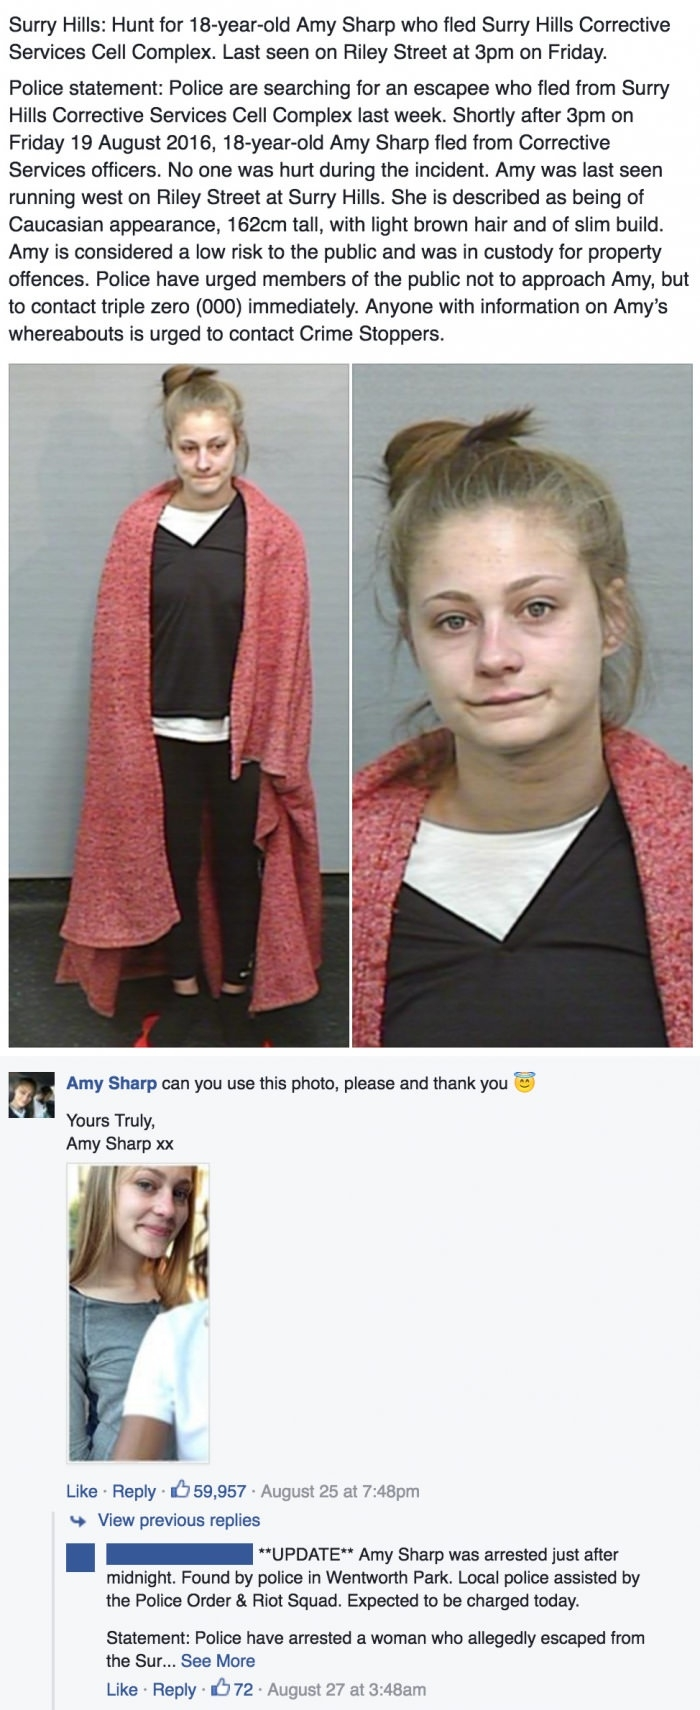 Teen on the run asks police on fb to use better photo of her